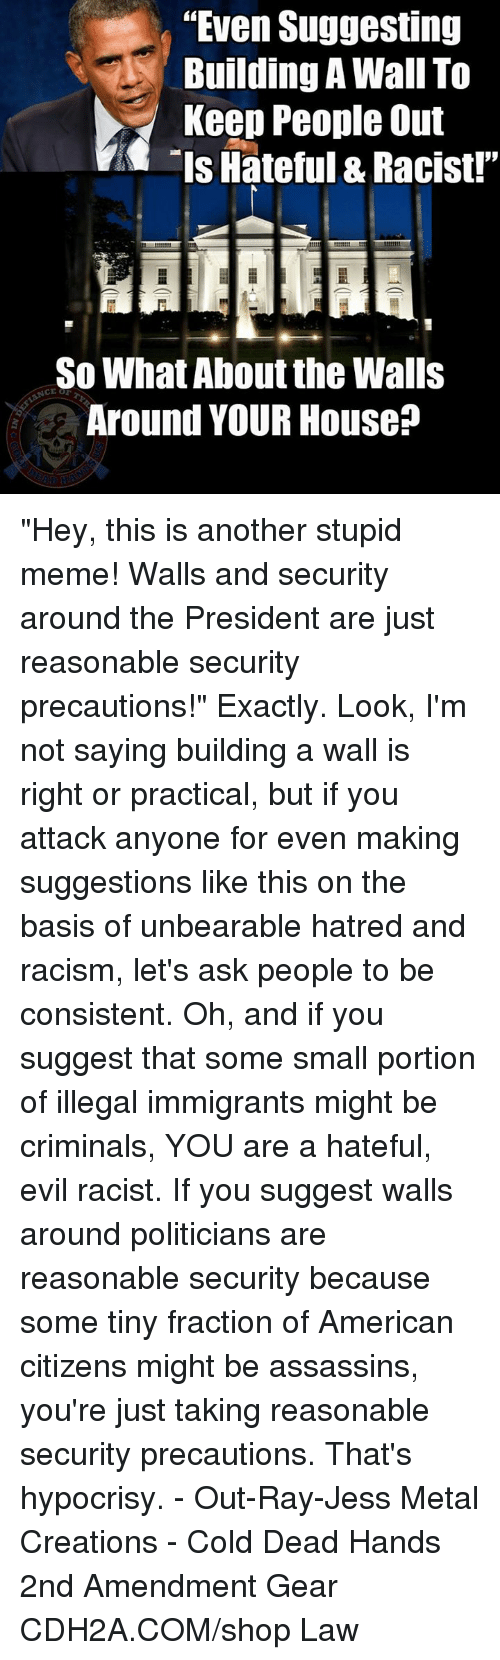 """Stupid Memes: """"Even Suggesting  uilding A Wall To  Keep People Out  Is Hateful & Racist!""""  So What About the Walls  Around YOUR House? """"Hey, this is another stupid meme!  Walls and security around the President are just reasonable security precautions!""""    Exactly.  Look, I'm not saying building a wall is right or practical, but if you attack anyone for even making suggestions like this on the basis of unbearable hatred and racism, let's ask people to be consistent.  Oh, and if you suggest that some small portion of illegal immigrants might be criminals, YOU are a hateful, evil racist.  If you suggest walls around politicians are reasonable security because some tiny fraction of American citizens might be assassins, you're just taking reasonable security precautions.   That's hypocrisy. - Out-Ray-Jess Metal Creations - Cold Dead Hands 2nd Amendment Gear CDH2A.COM/shop Law"""